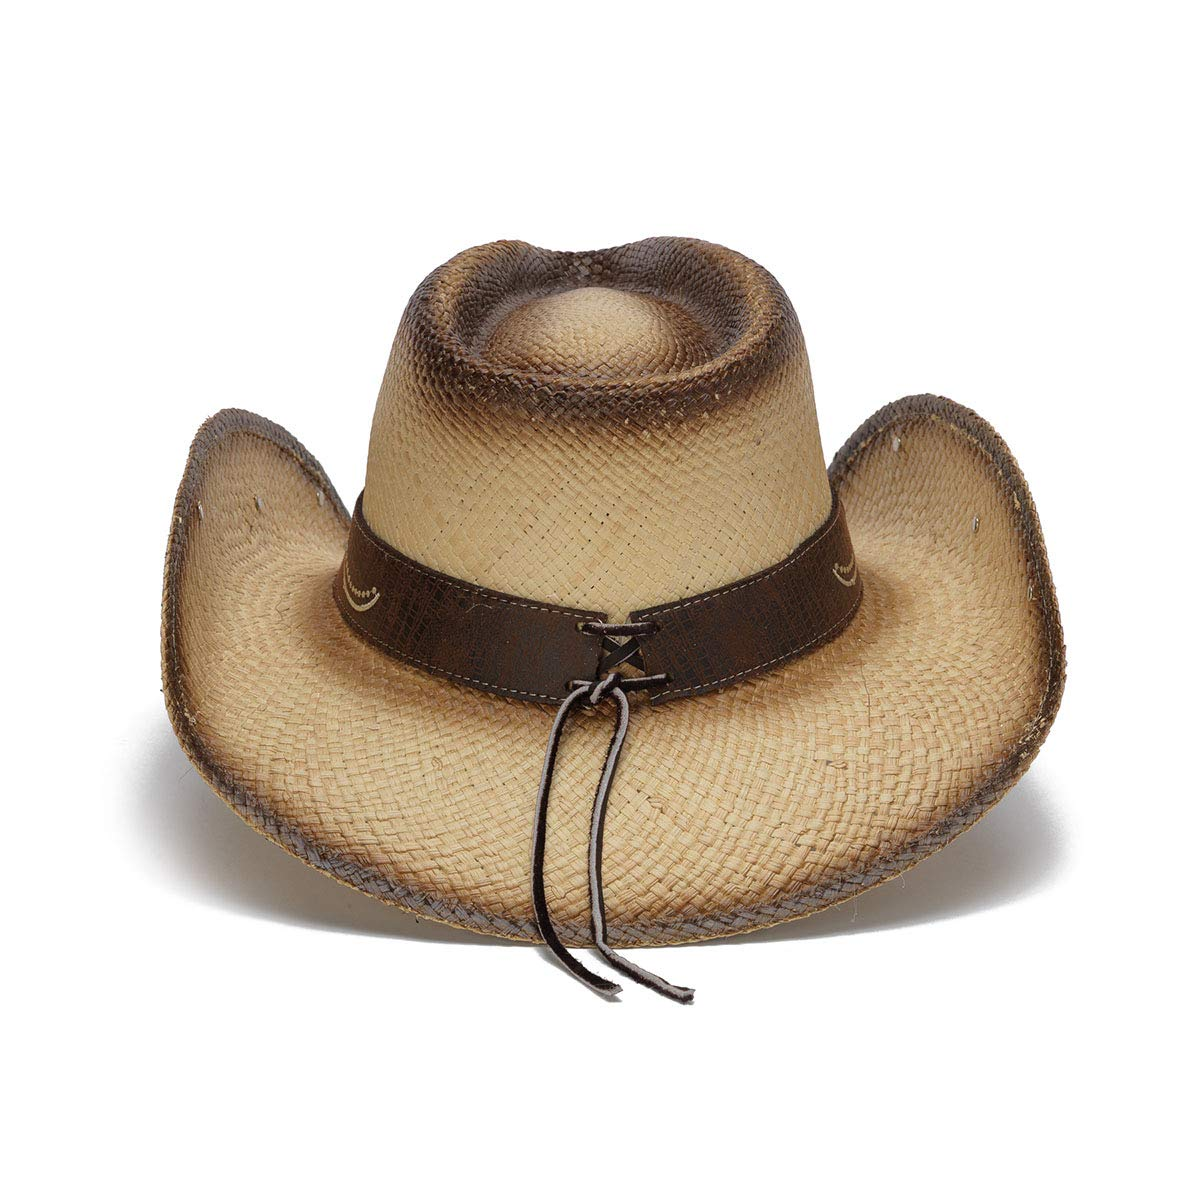 Stampede Hats Women's Sky Action Floral Embroidered Western Hat S Tea Stain by Stampede Hats (Image #4)